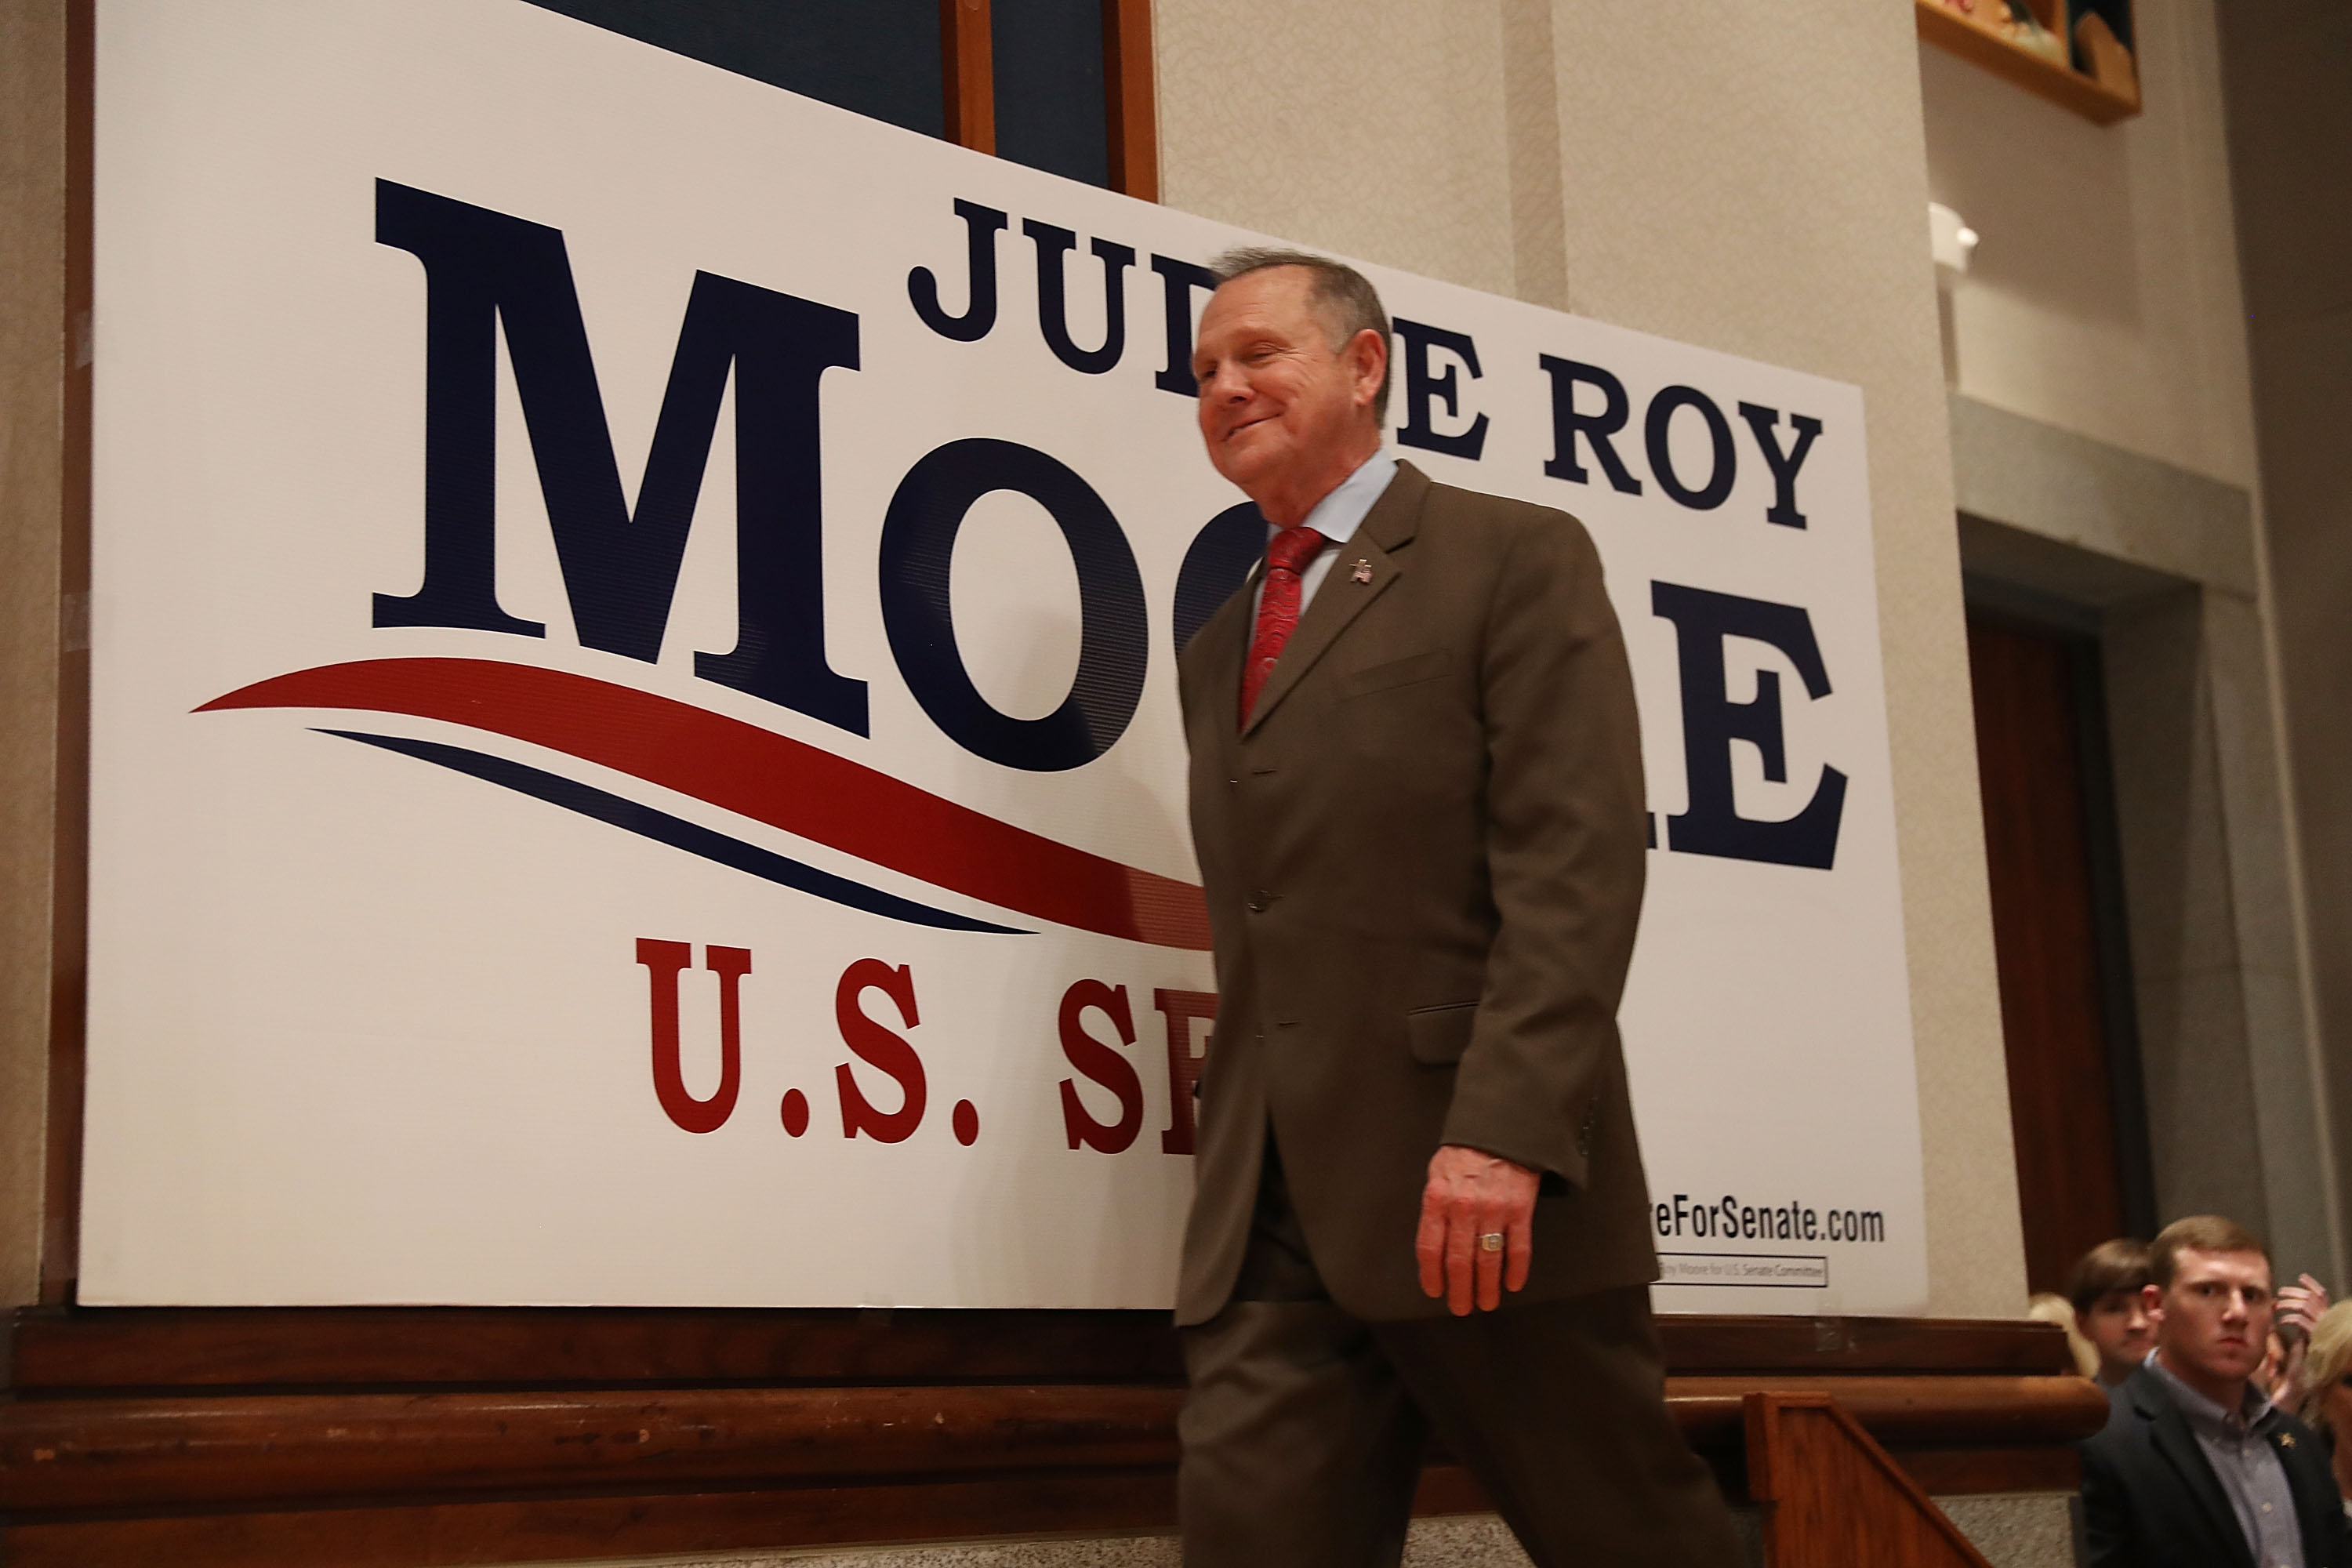 MONTGOMERY, AL - DECEMBER 12: Republican Senatorial candidate Roy Moore arrives on stage to speak about the race against his Democratic opponent Doug Jones is too close and there will be a recount during his election night party in the RSA Activity Center on December 12, 2017 in Montgomery, Alabama. The candidates are running in a special election to replace Attorney General Jeff Sessions in the U.S. Senate. (Photo by Joe Raedle/Getty Images)